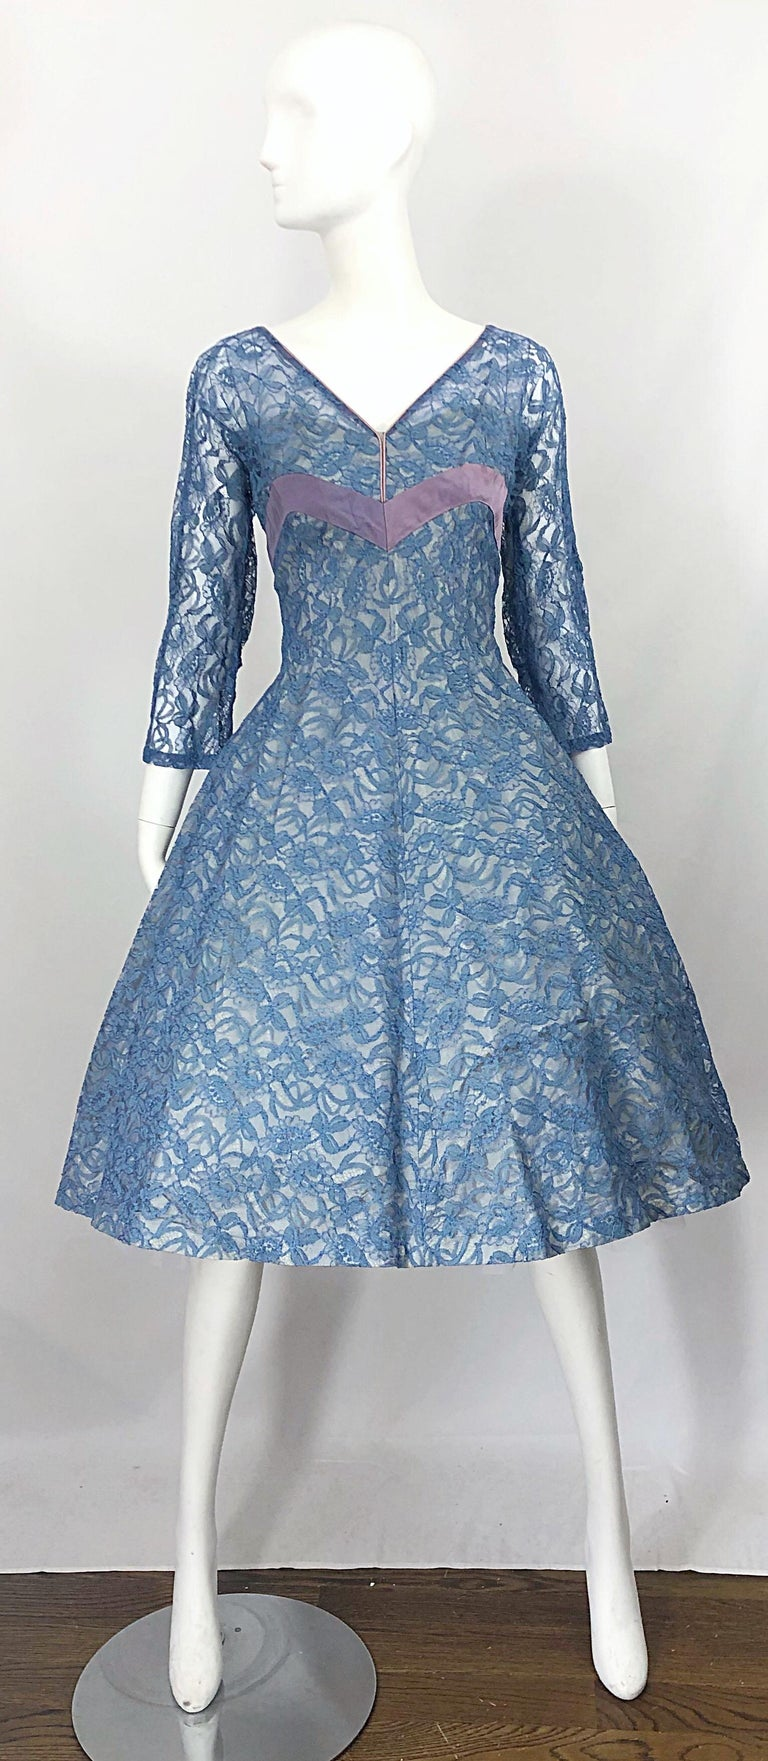 Beautiful 1950s demi couture periwinkle blue fit n' flare chantily lace dress! Features a fitted bodice with a forgiving full skirt. Satin lining at bust, with matching ribbon detail on back. Attached inner slip, with hidden metal zipper up the back